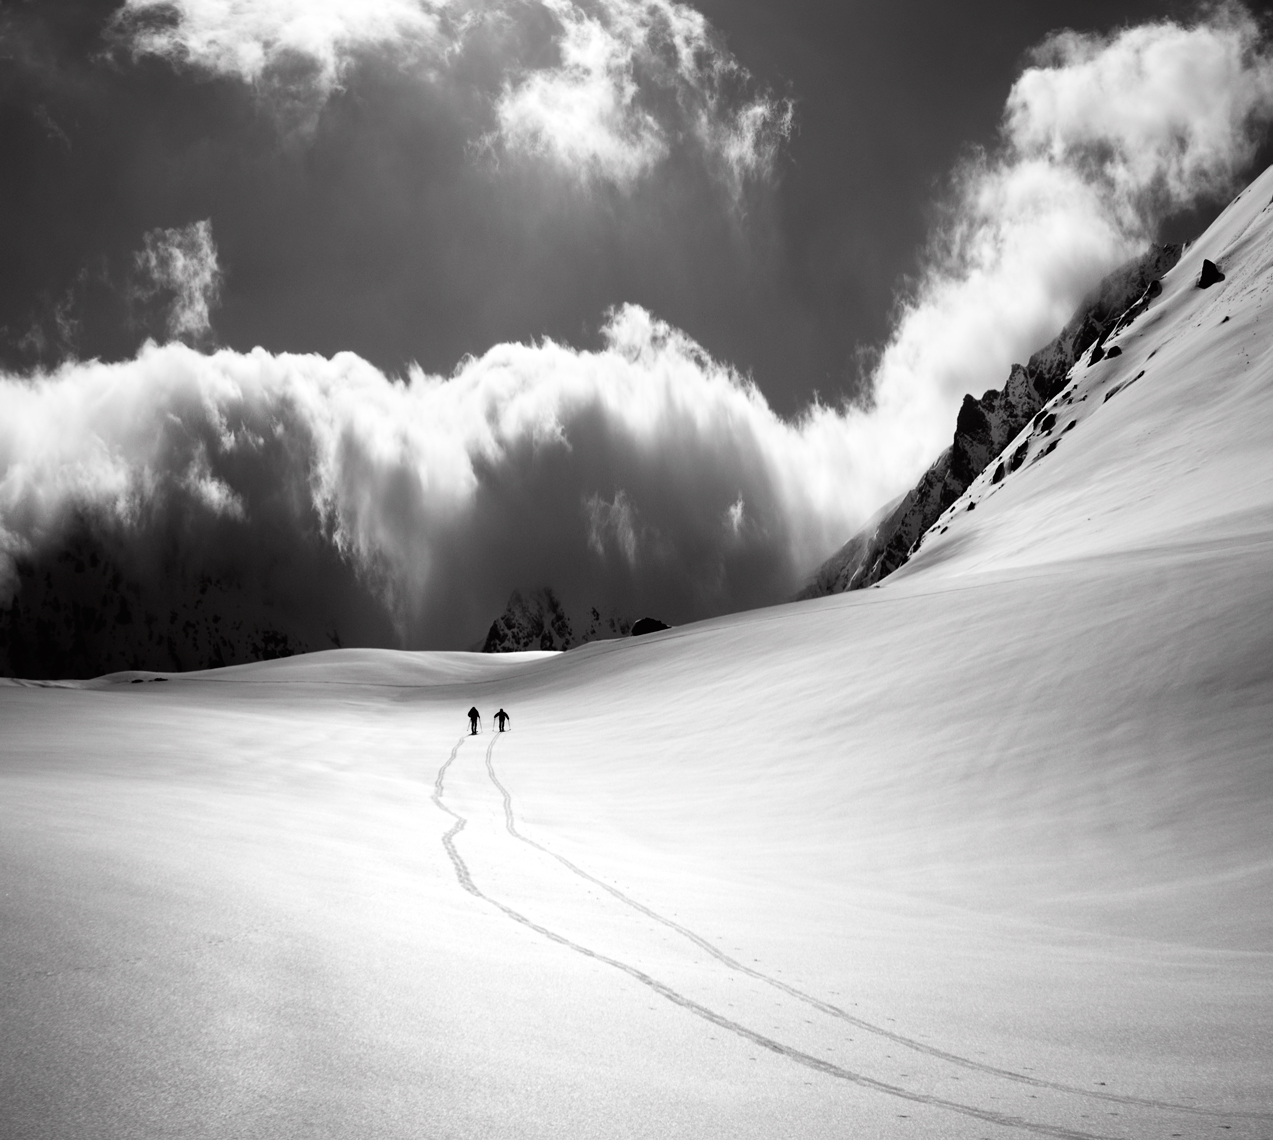 Jon Wyatt Photography - Ski touring in backcountry near Sainte Foy Tarentaise, France